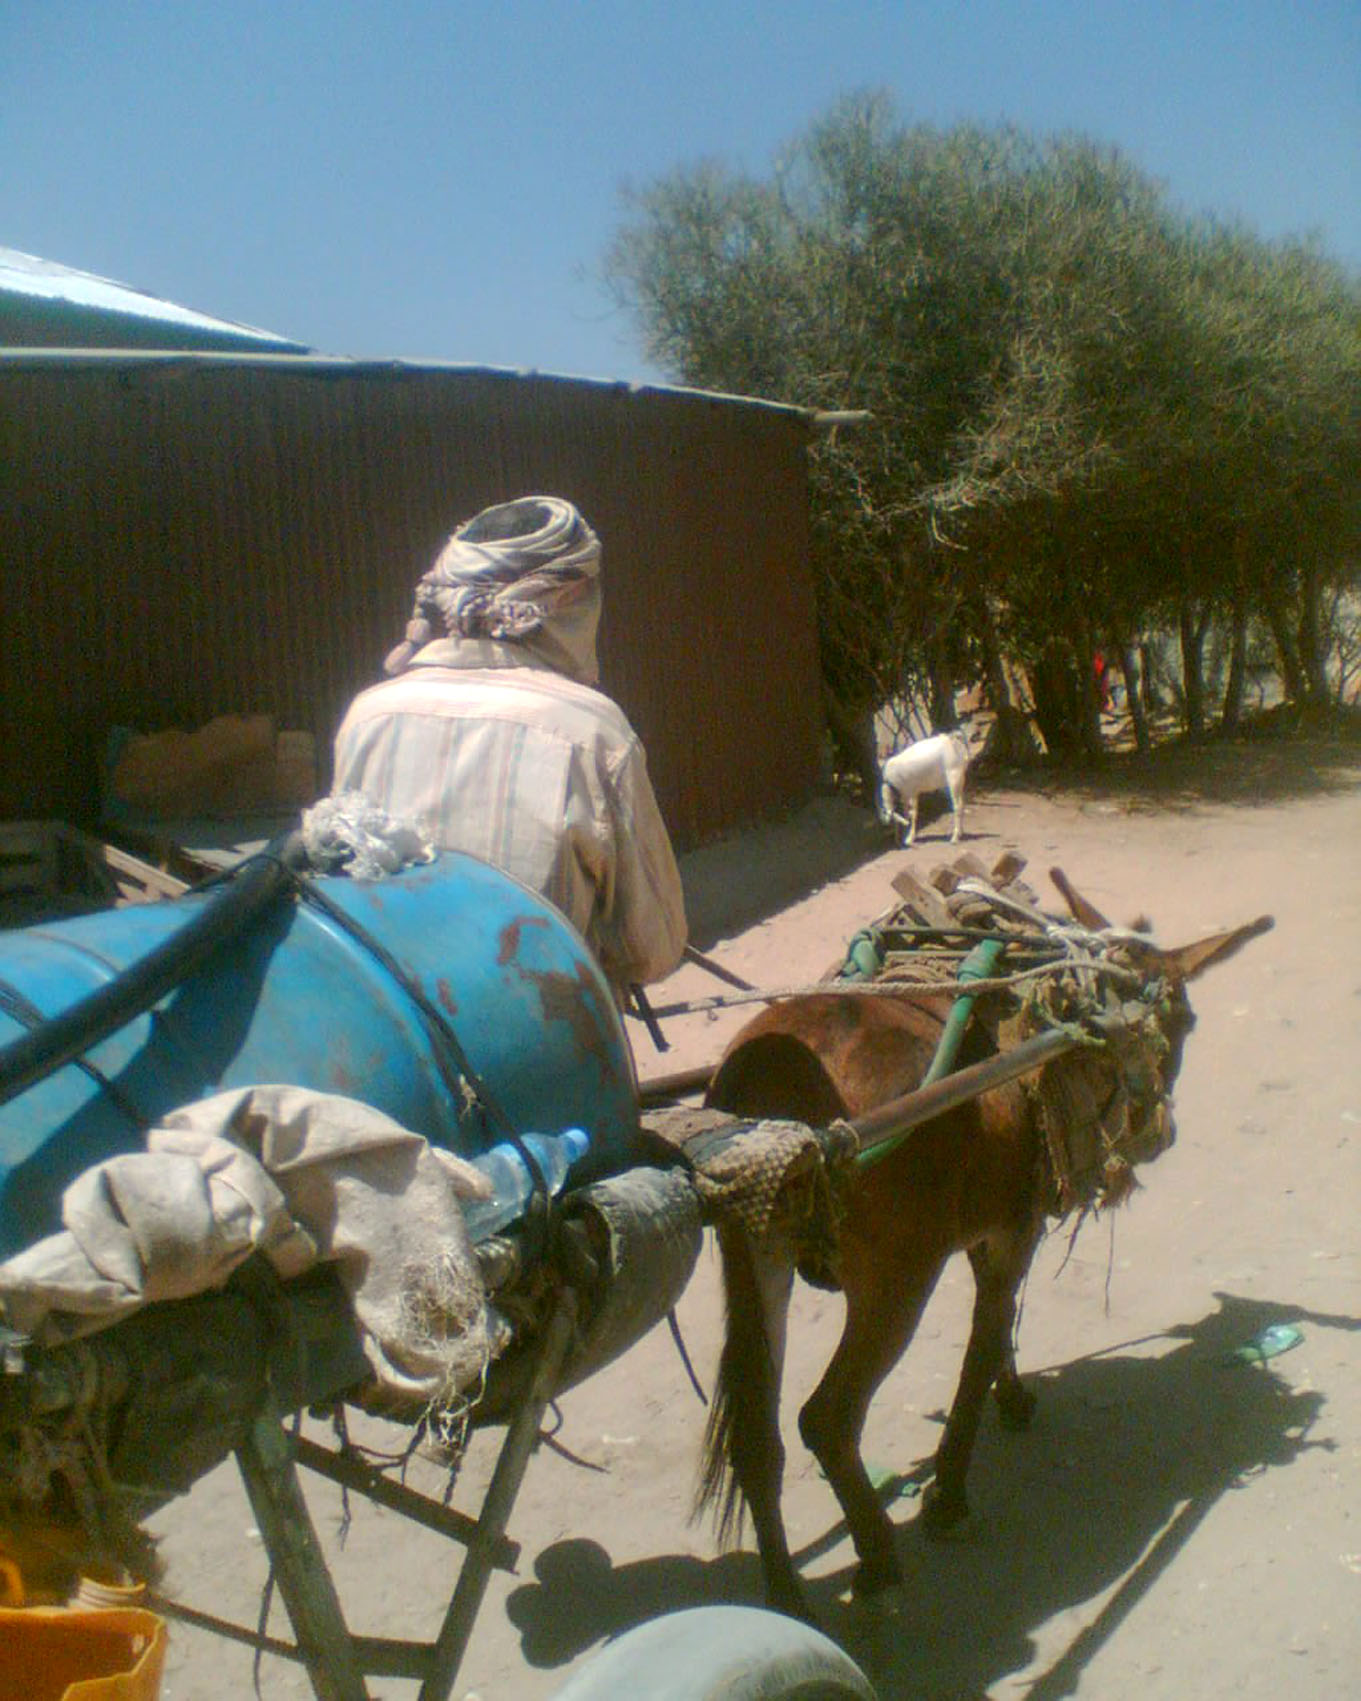 A water vendor in Hargeisa, capital of Somalia's self-declared republic of Somaliland